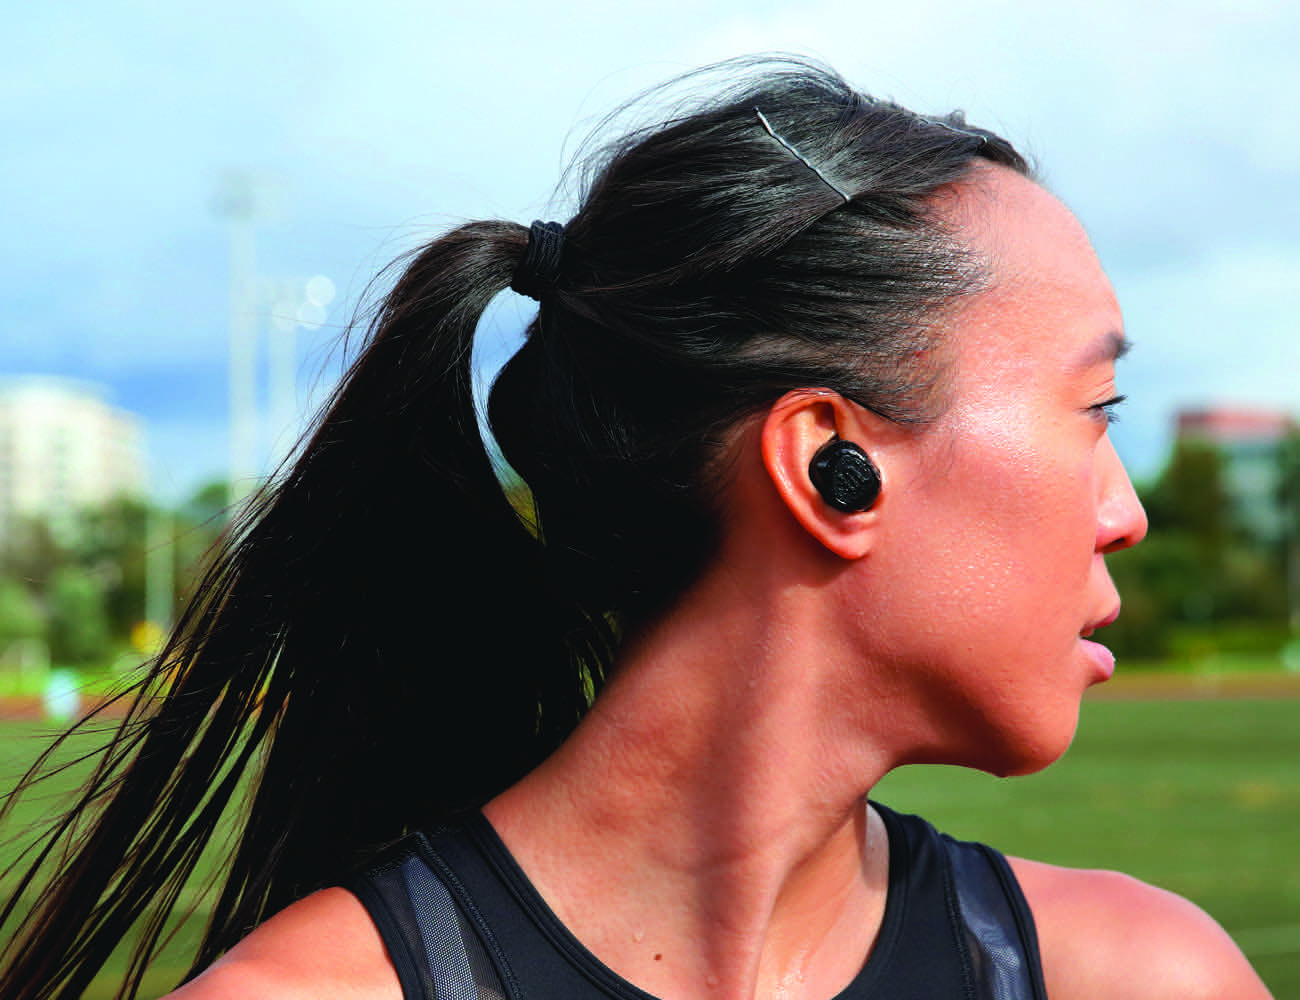 X-SHOCK True Wireless Sport Earphones